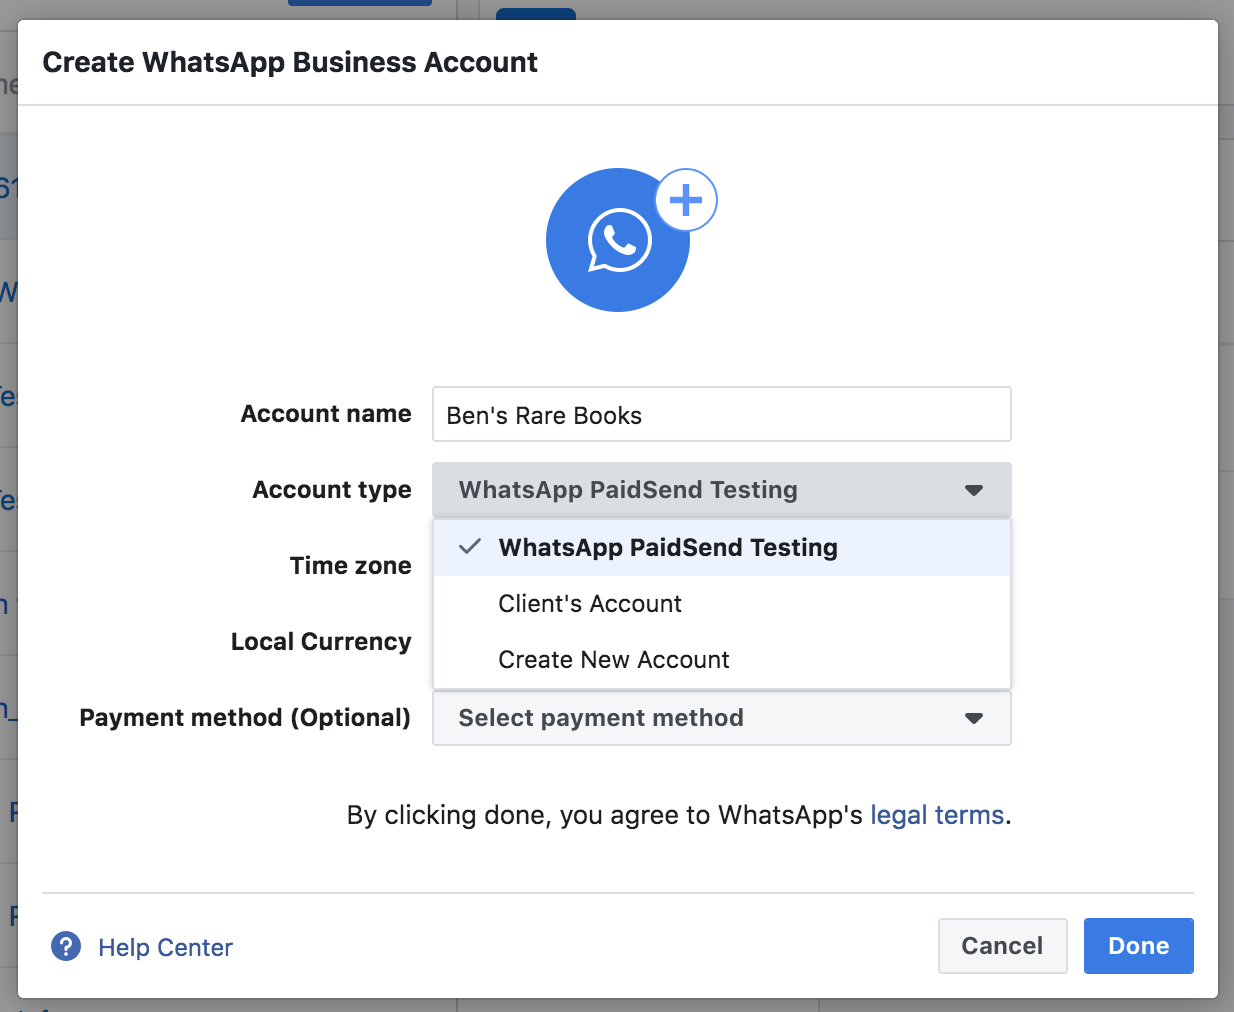 whatsapp-business-onboarding-3